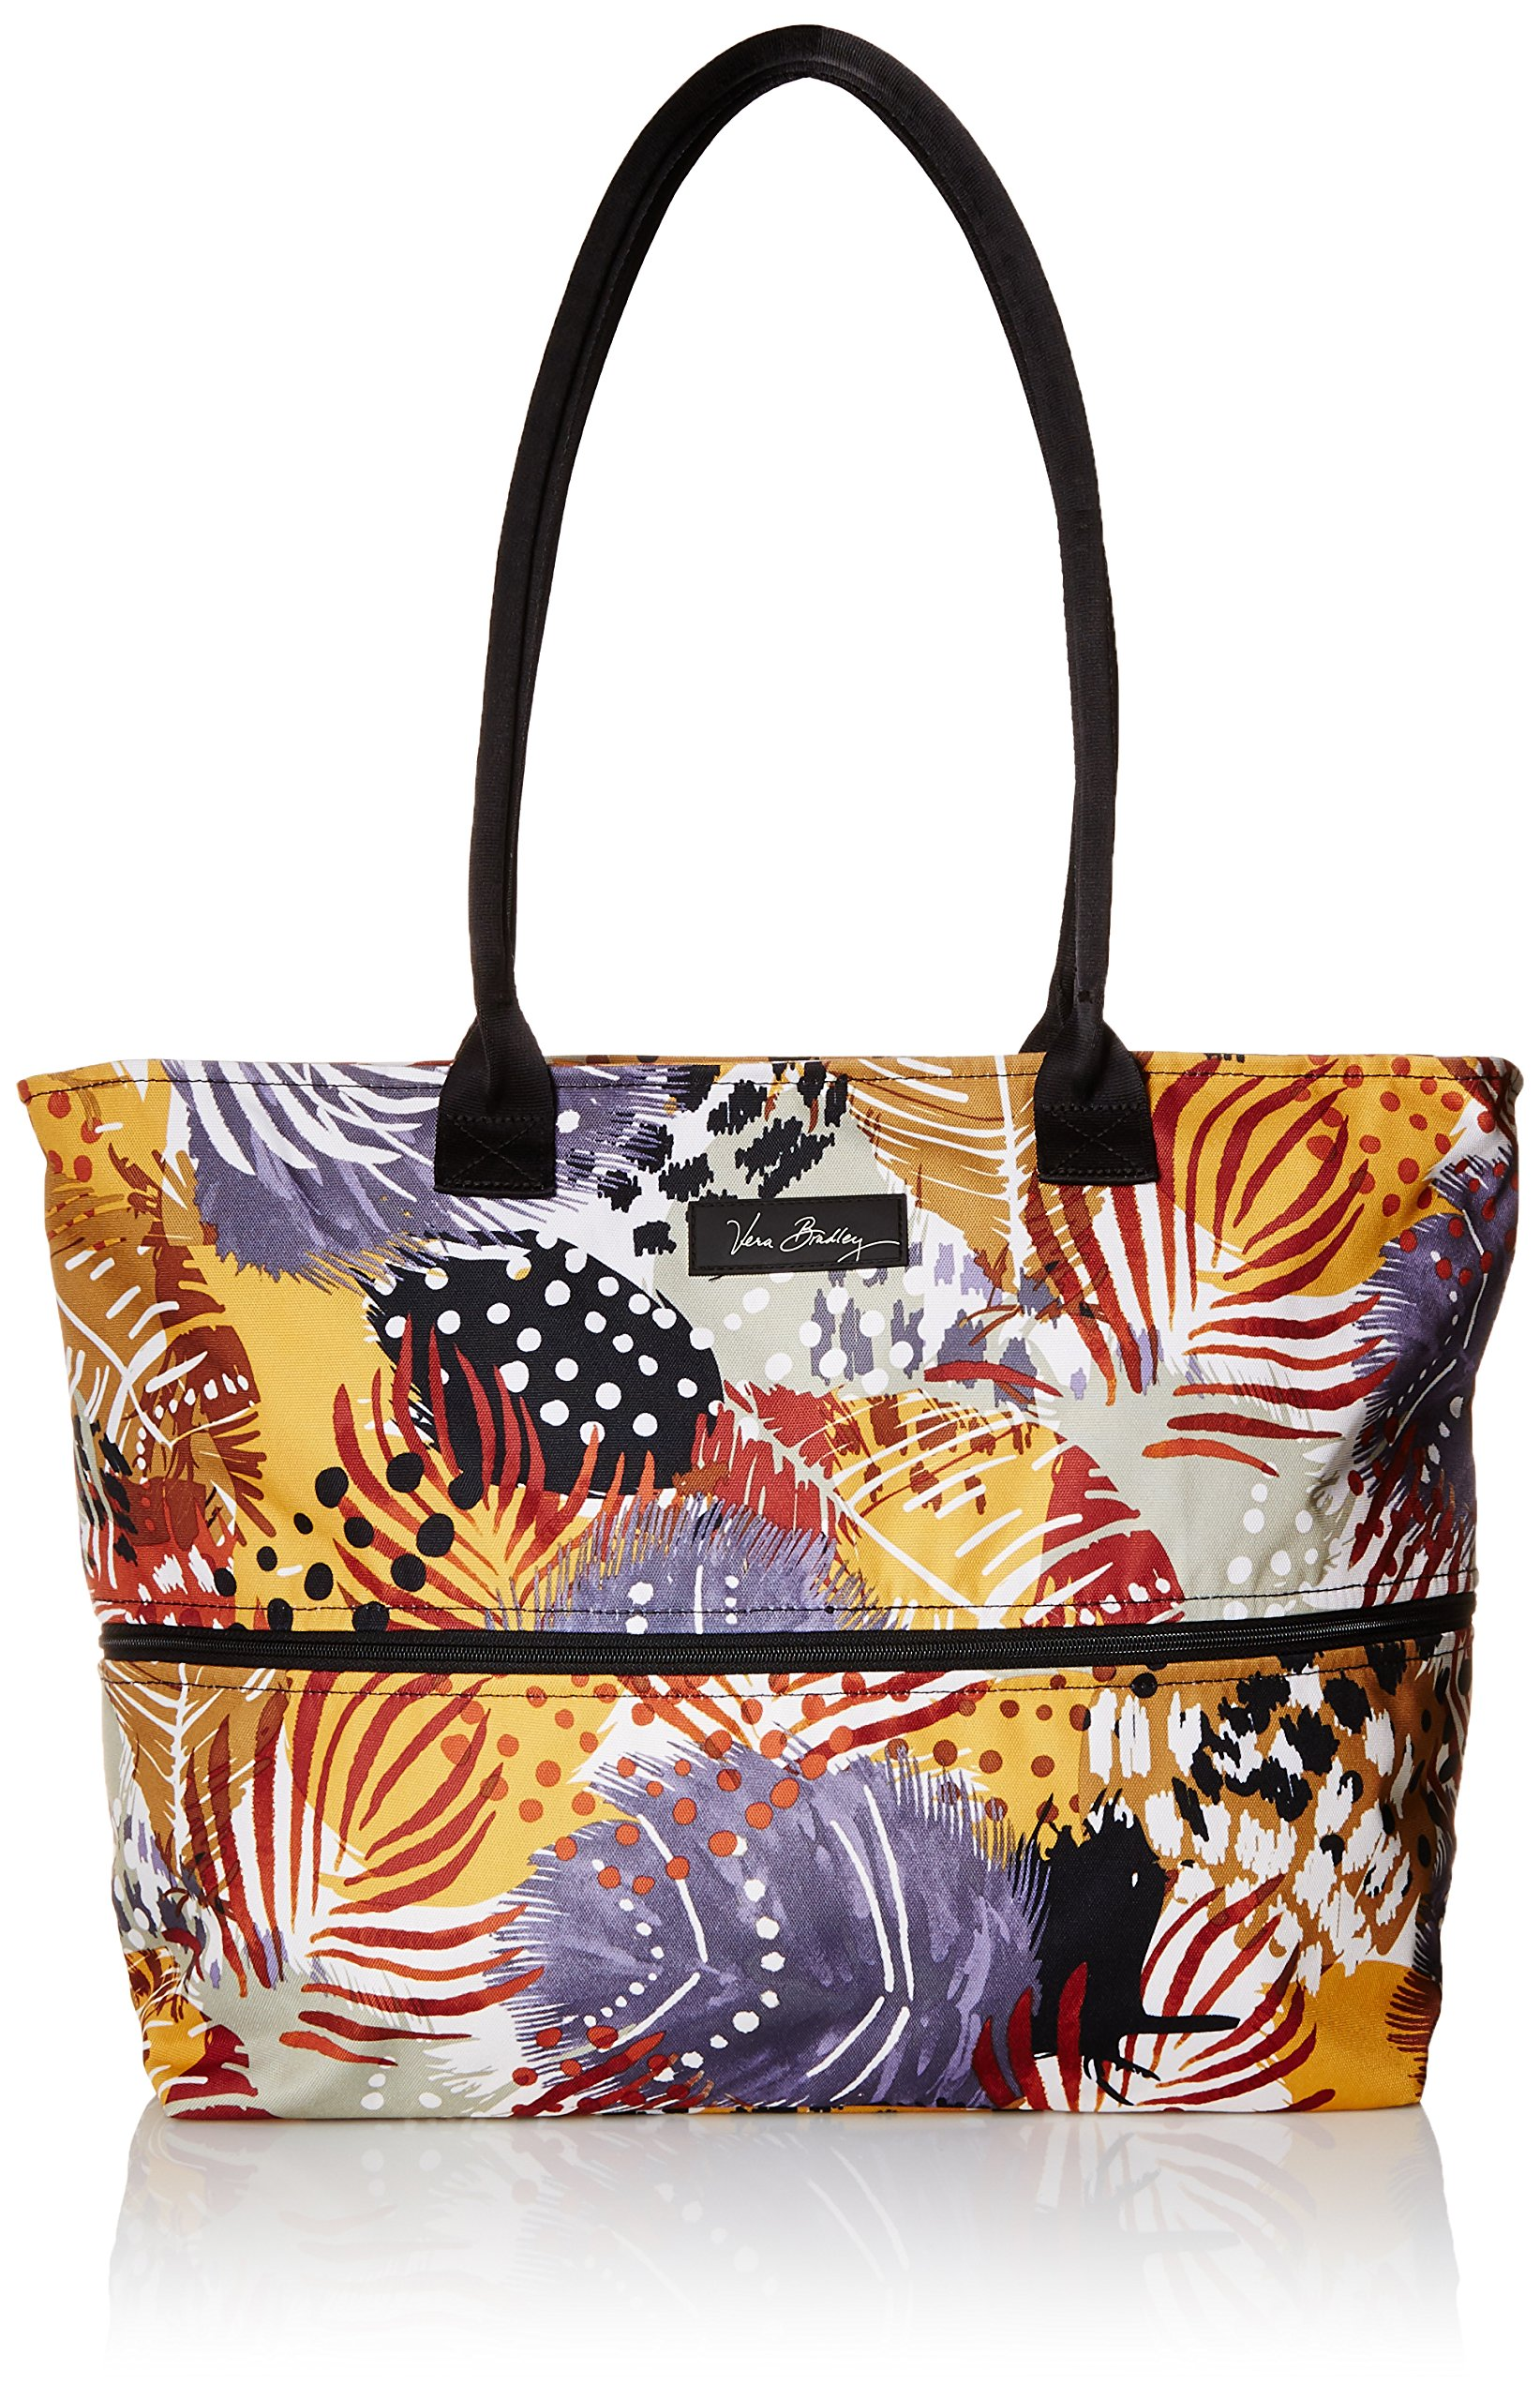 Vera Bradley Women's Lighten up Expandable Travel Tote, Painted Feathers